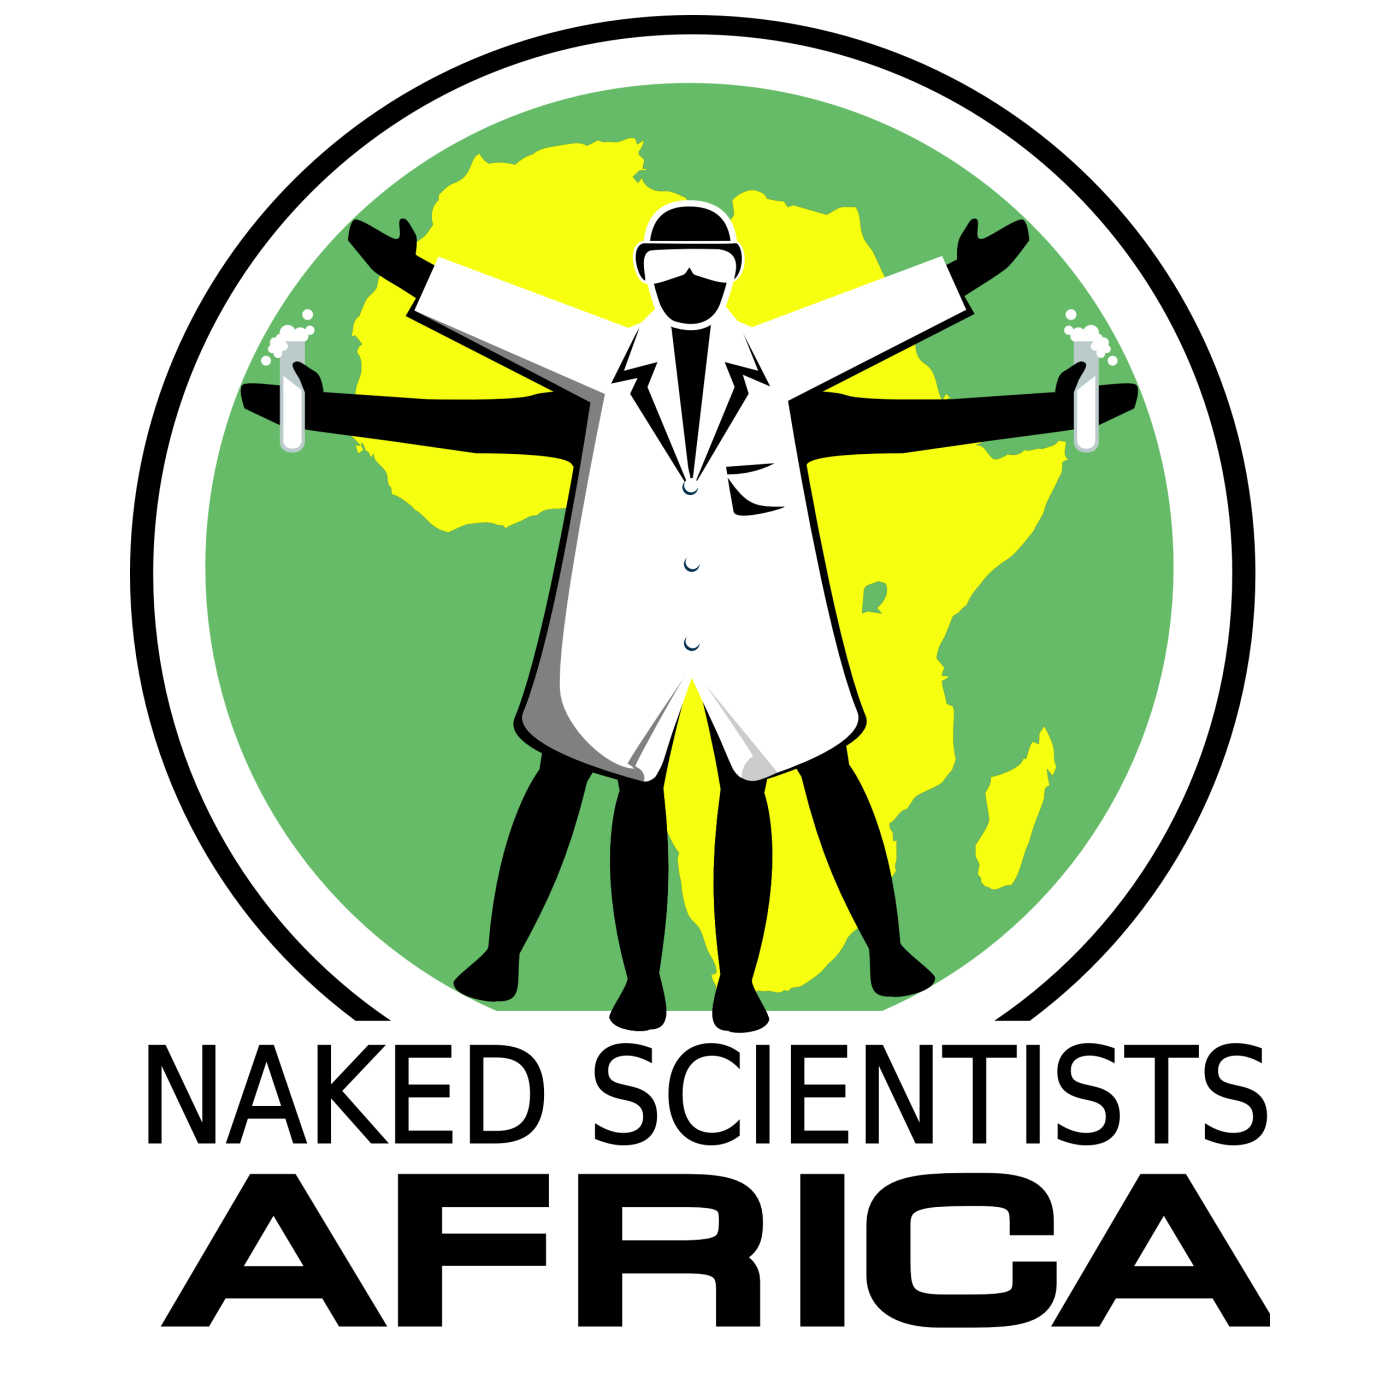 The naked scientist, chris smith